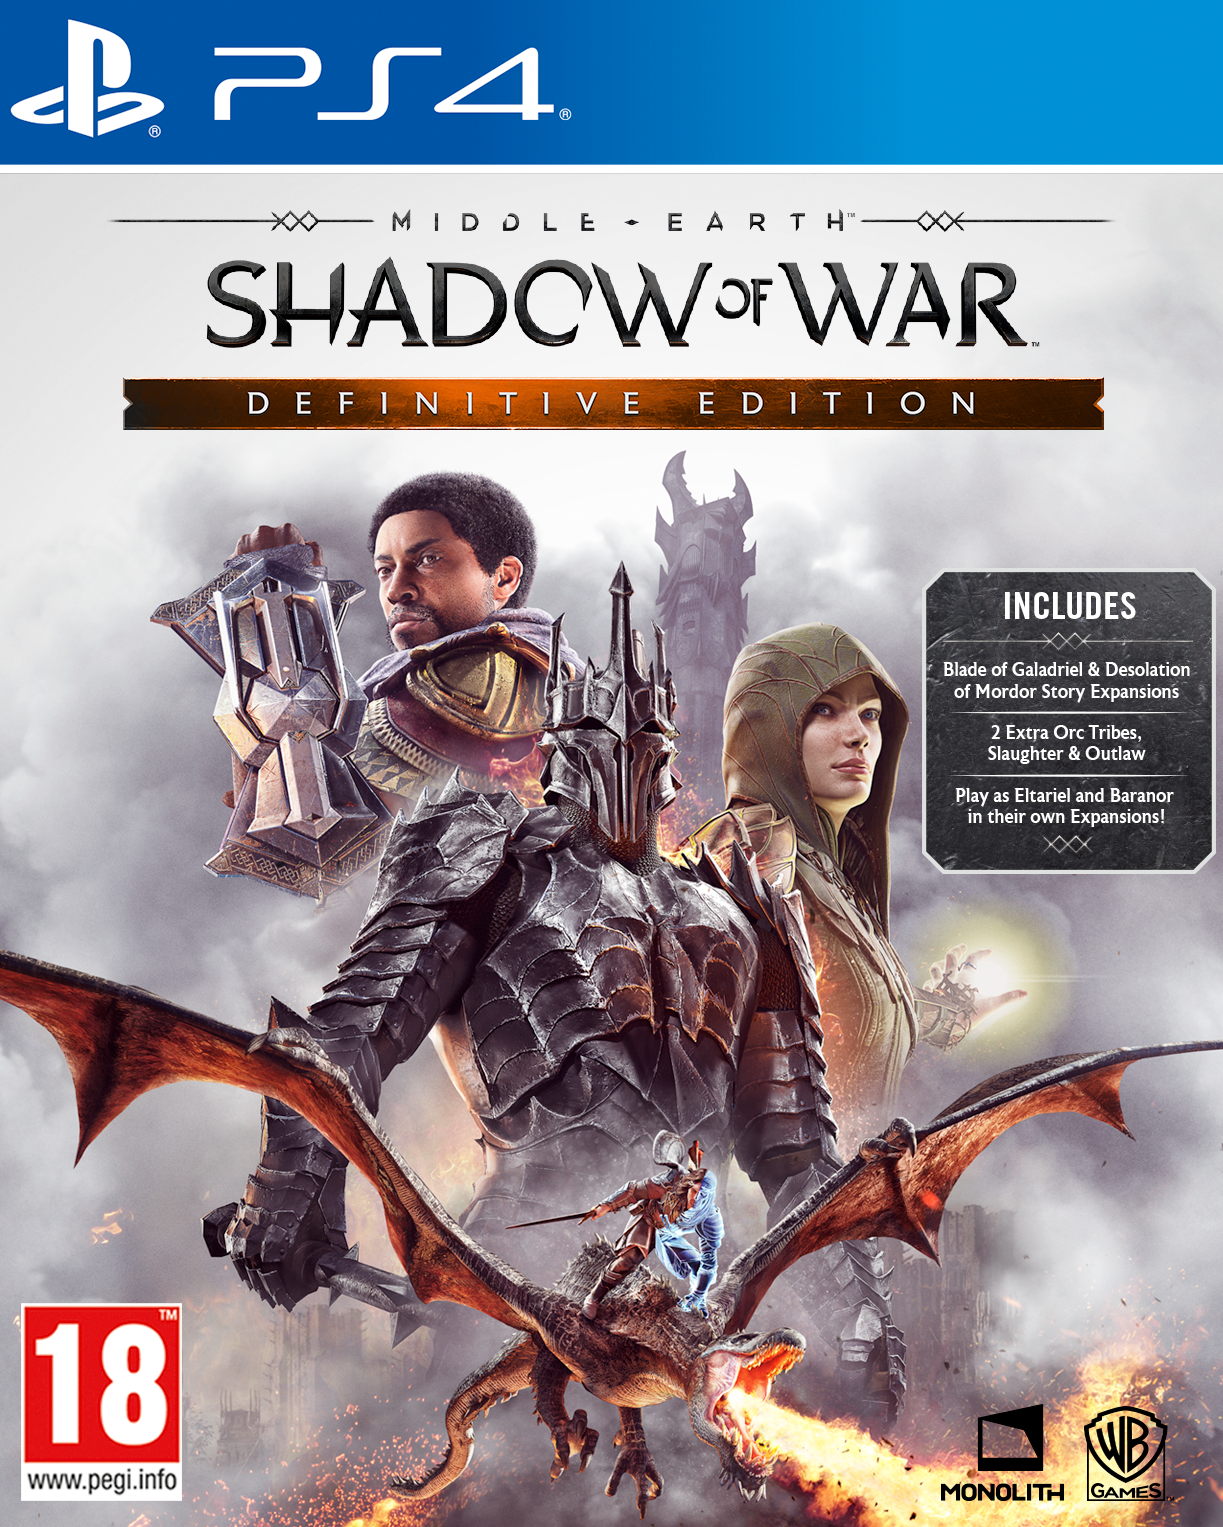 Middle Earth Shadow of War Definitive Edition